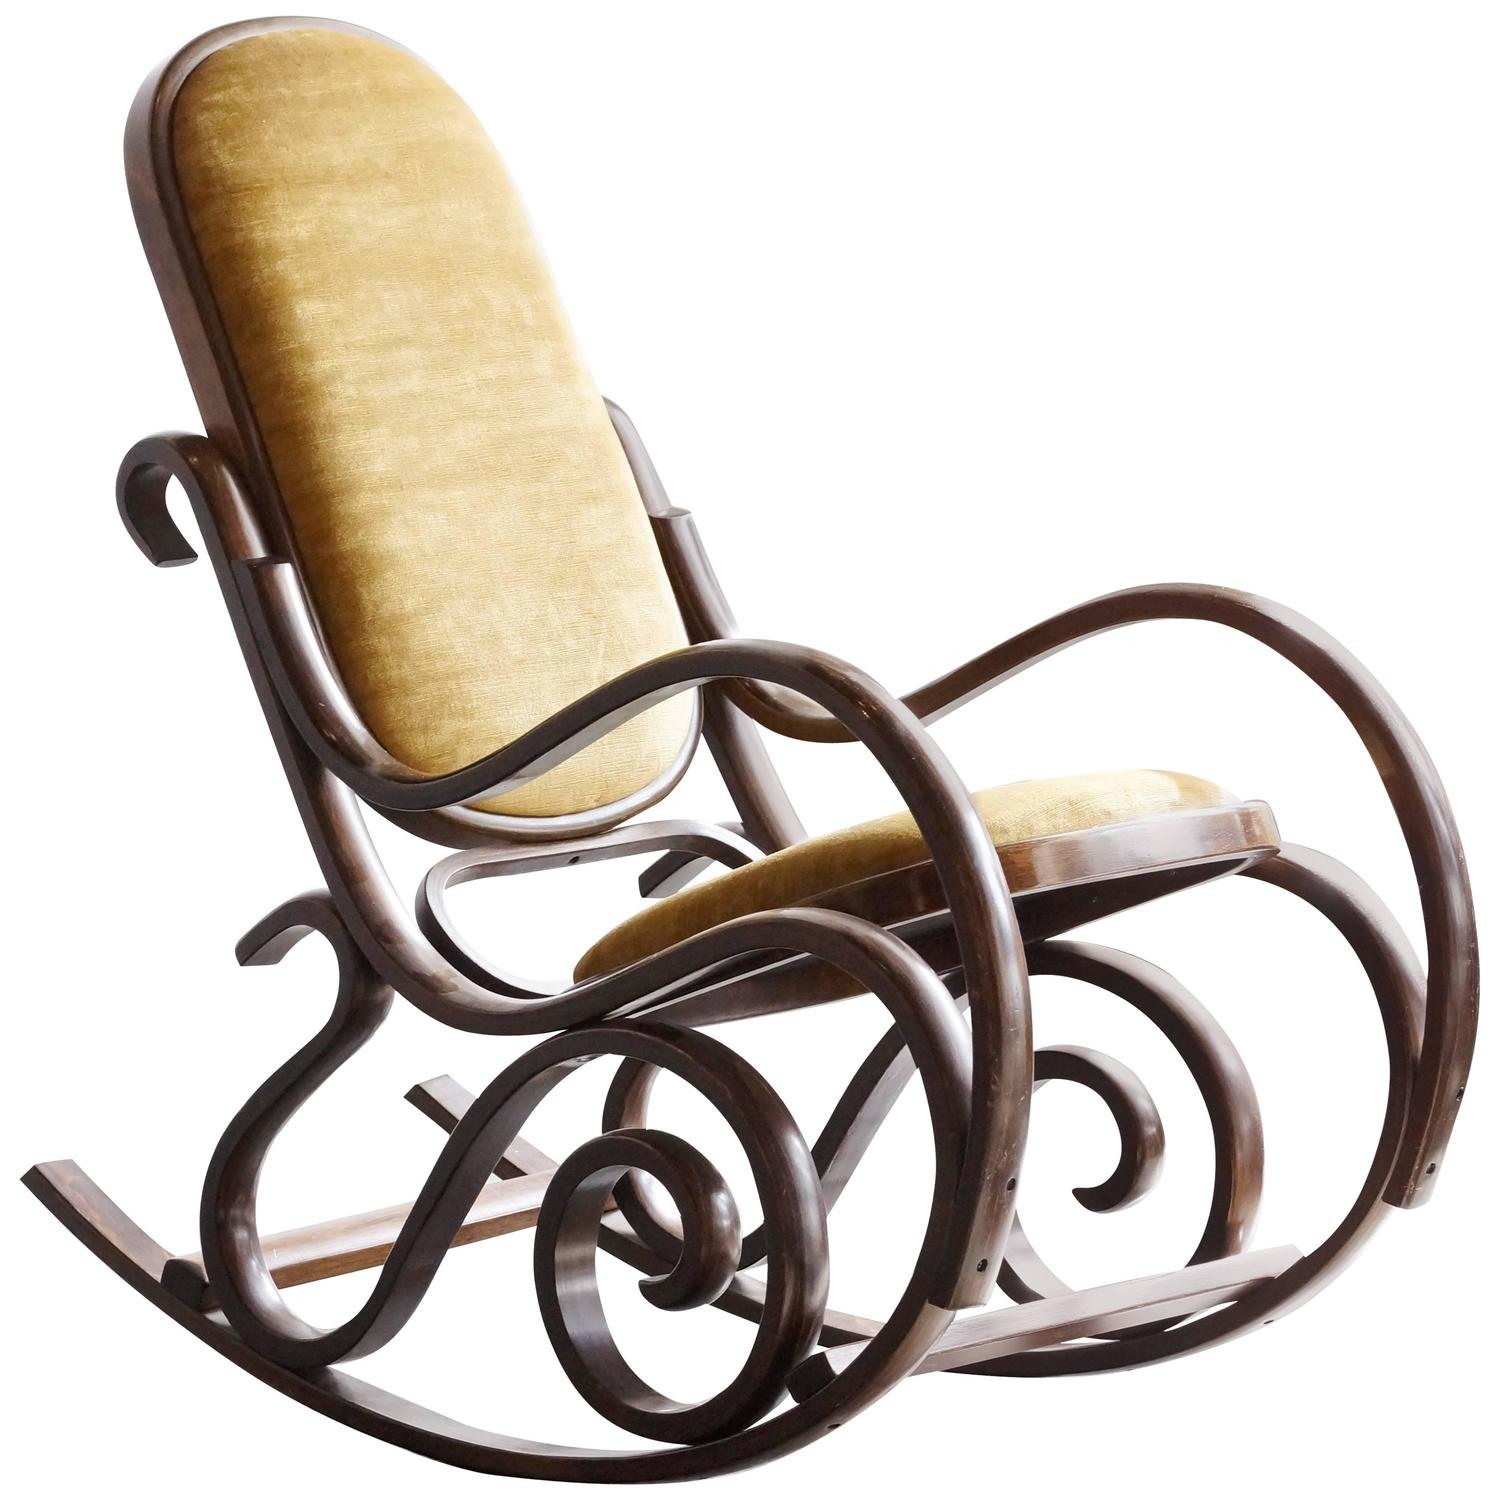 bent wood rocking chair hanging chairs for outside australia thonet style bentwood at 1stdibs